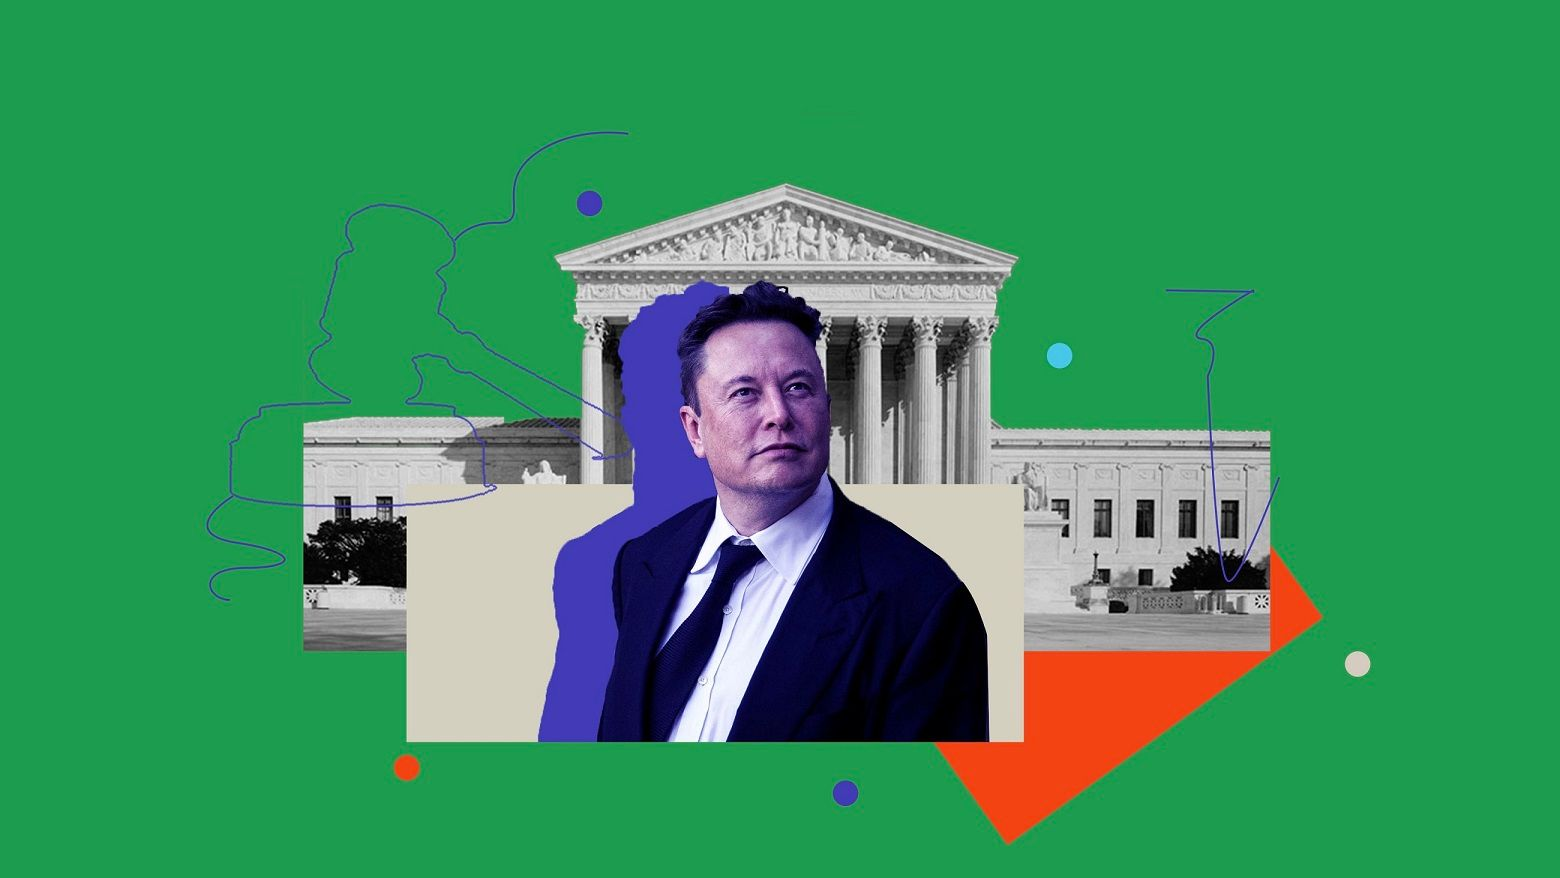 Elon Musk's day in court